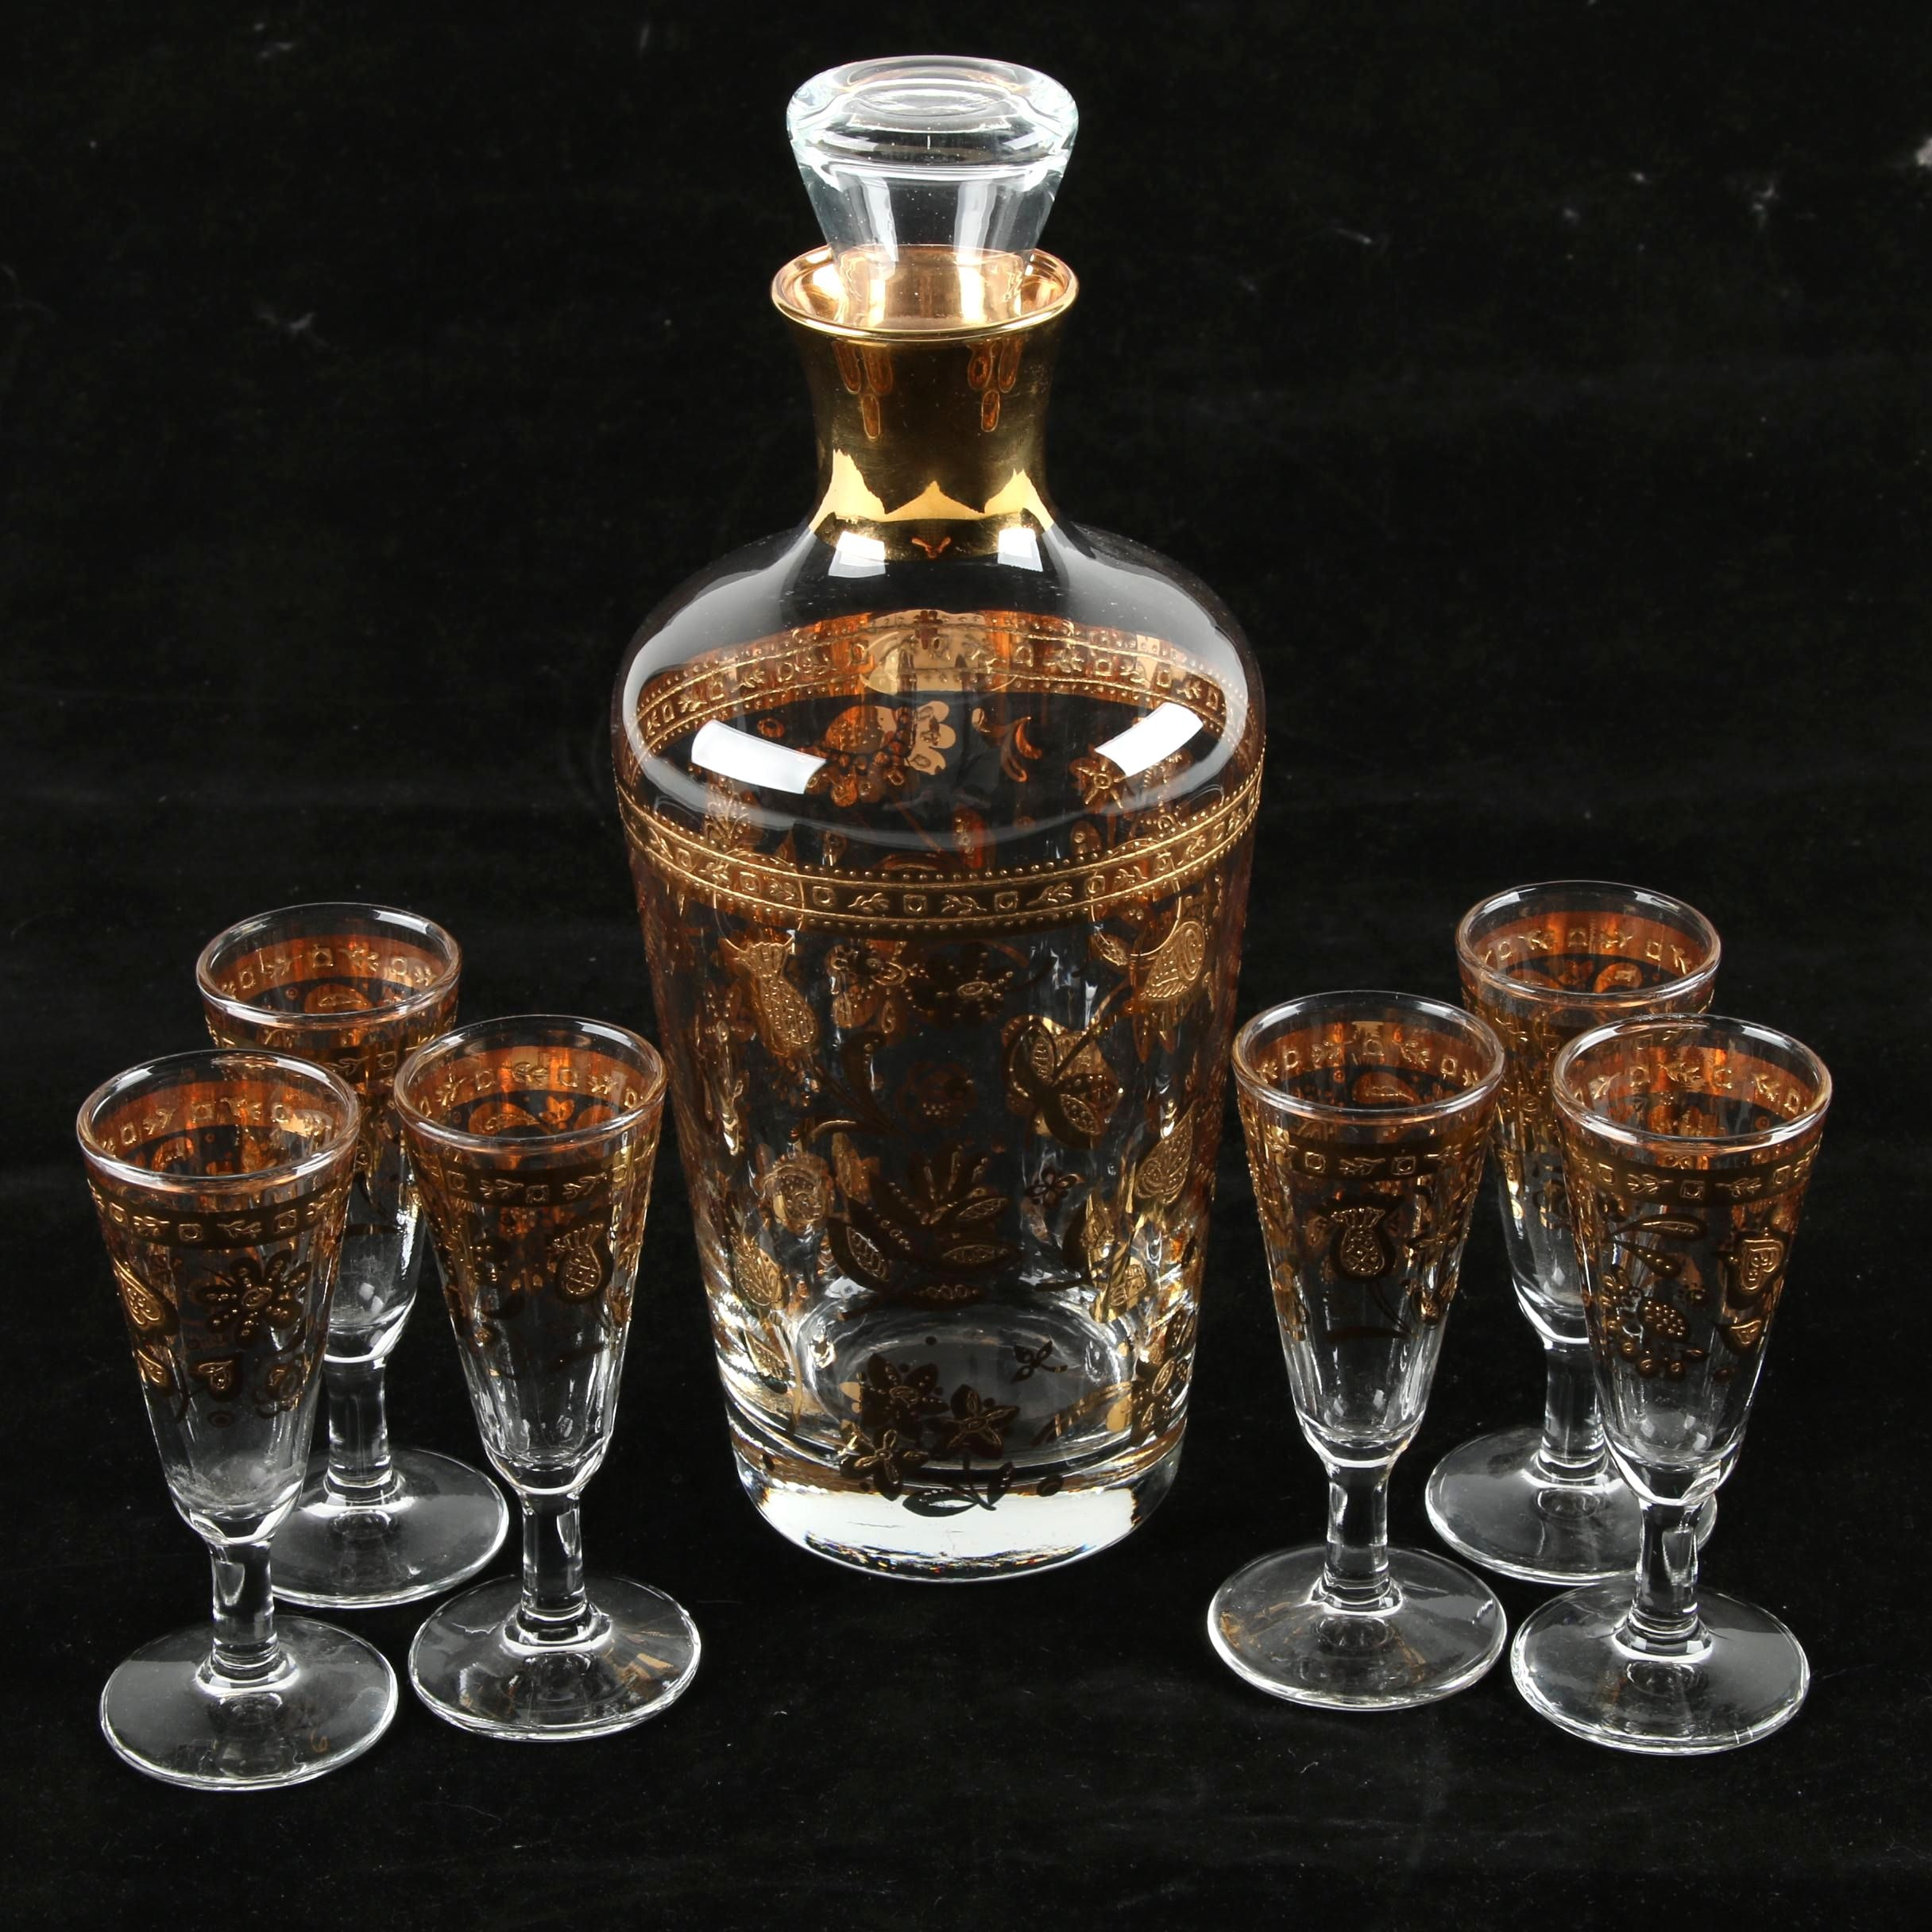 Vintage Gilt Decanter and Cordials